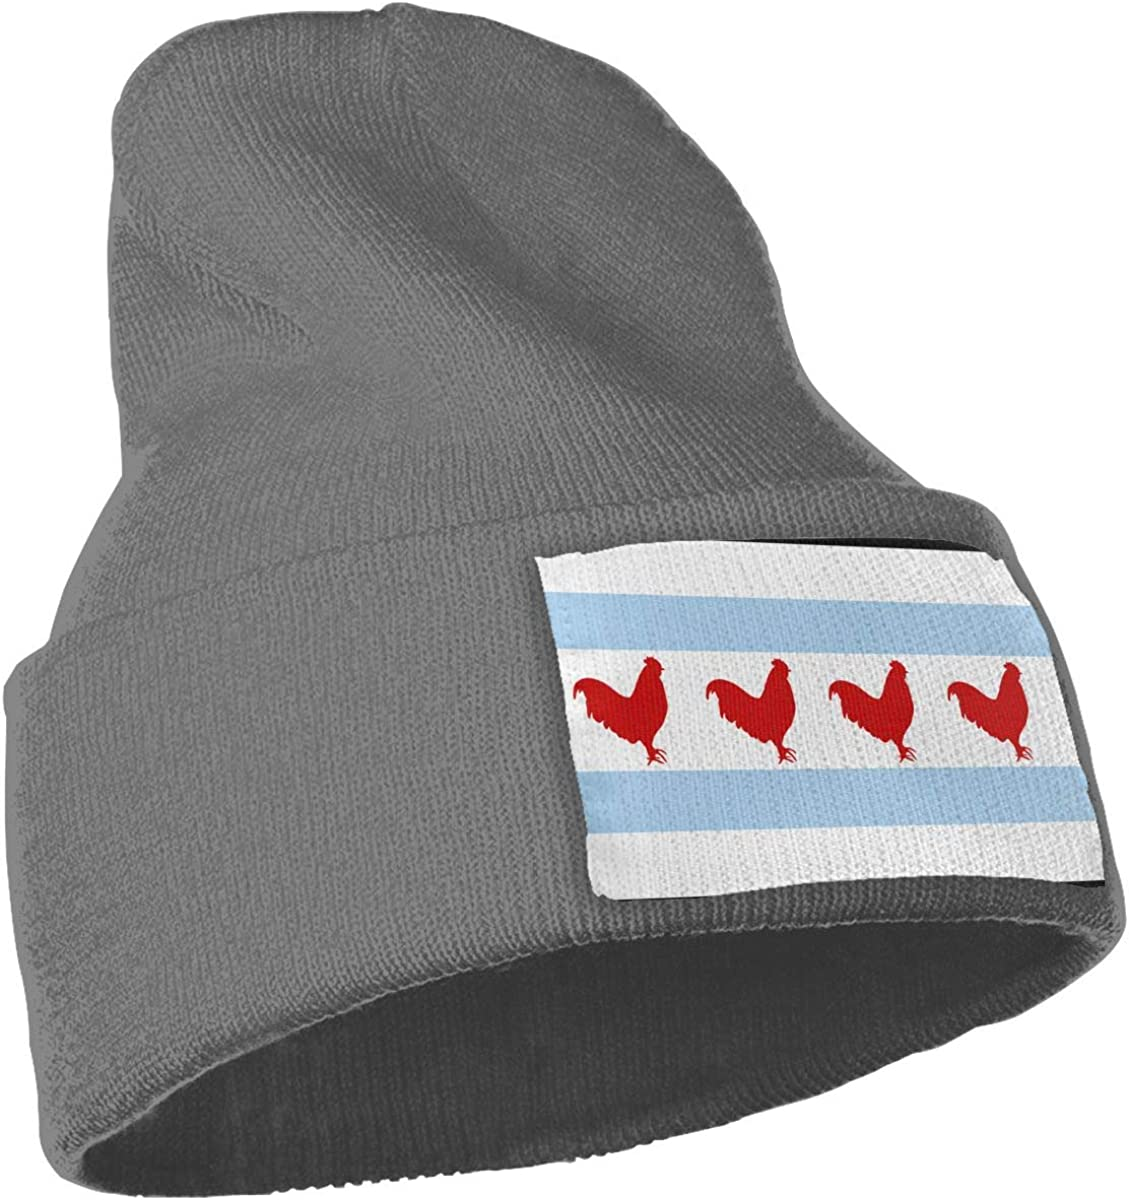 Chicago Flag Chicken-3 Soft Skull Cap WHOO93@Y Mens and Womens 100/% Acrylic Knit Hat Cap